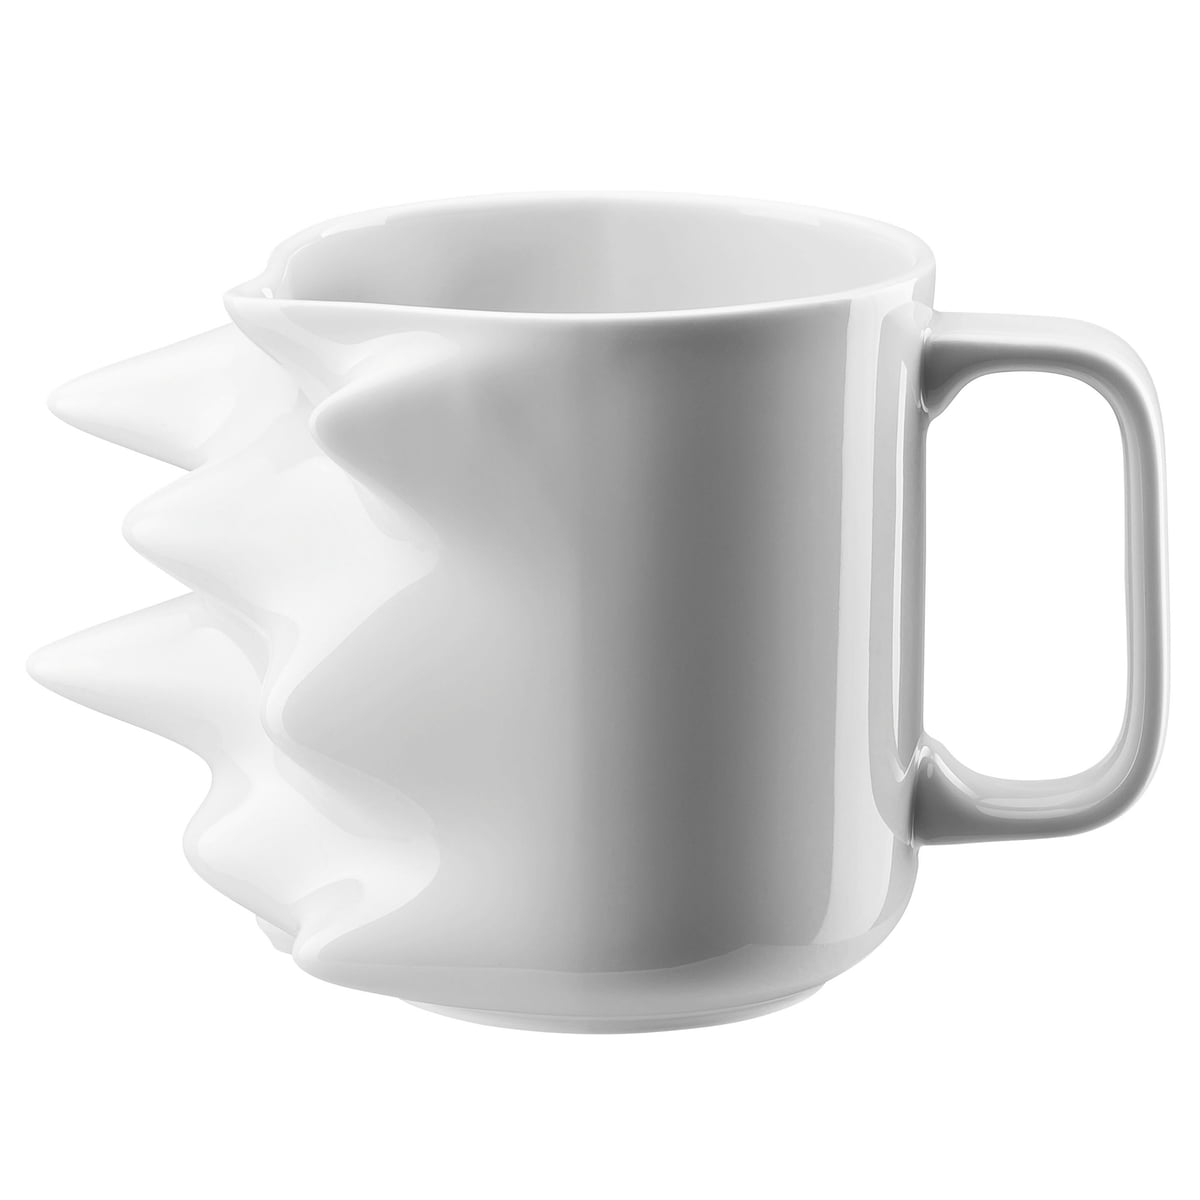 Large fast mug by rosenthal online the fast mug with handle large reviewsmspy